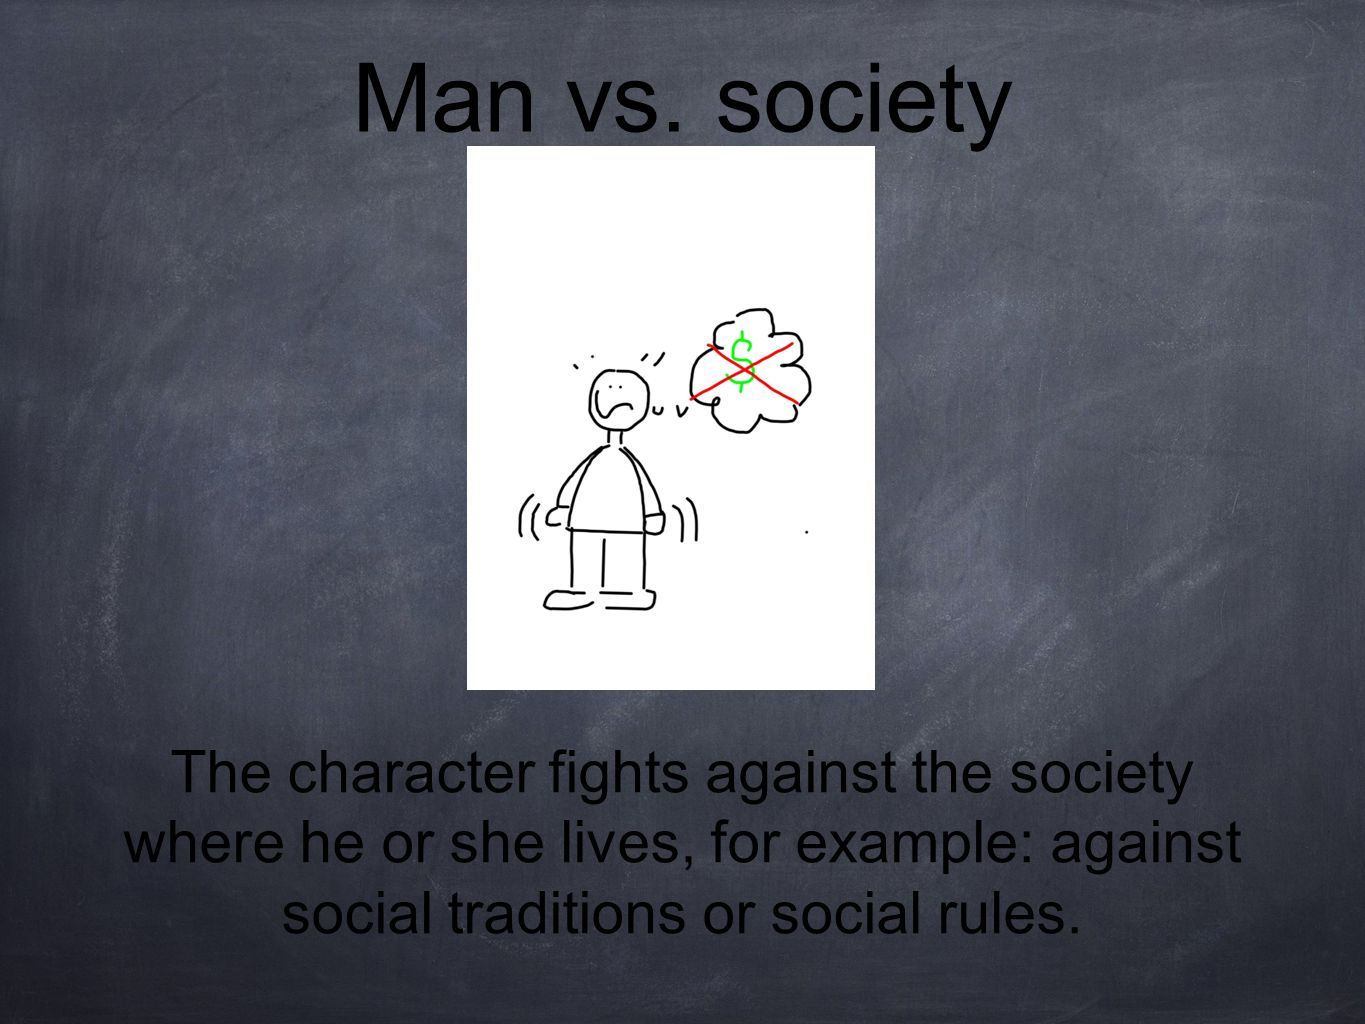 Man vs. society The character fights against the society where he or she lives, for example: against social traditions or social rules.